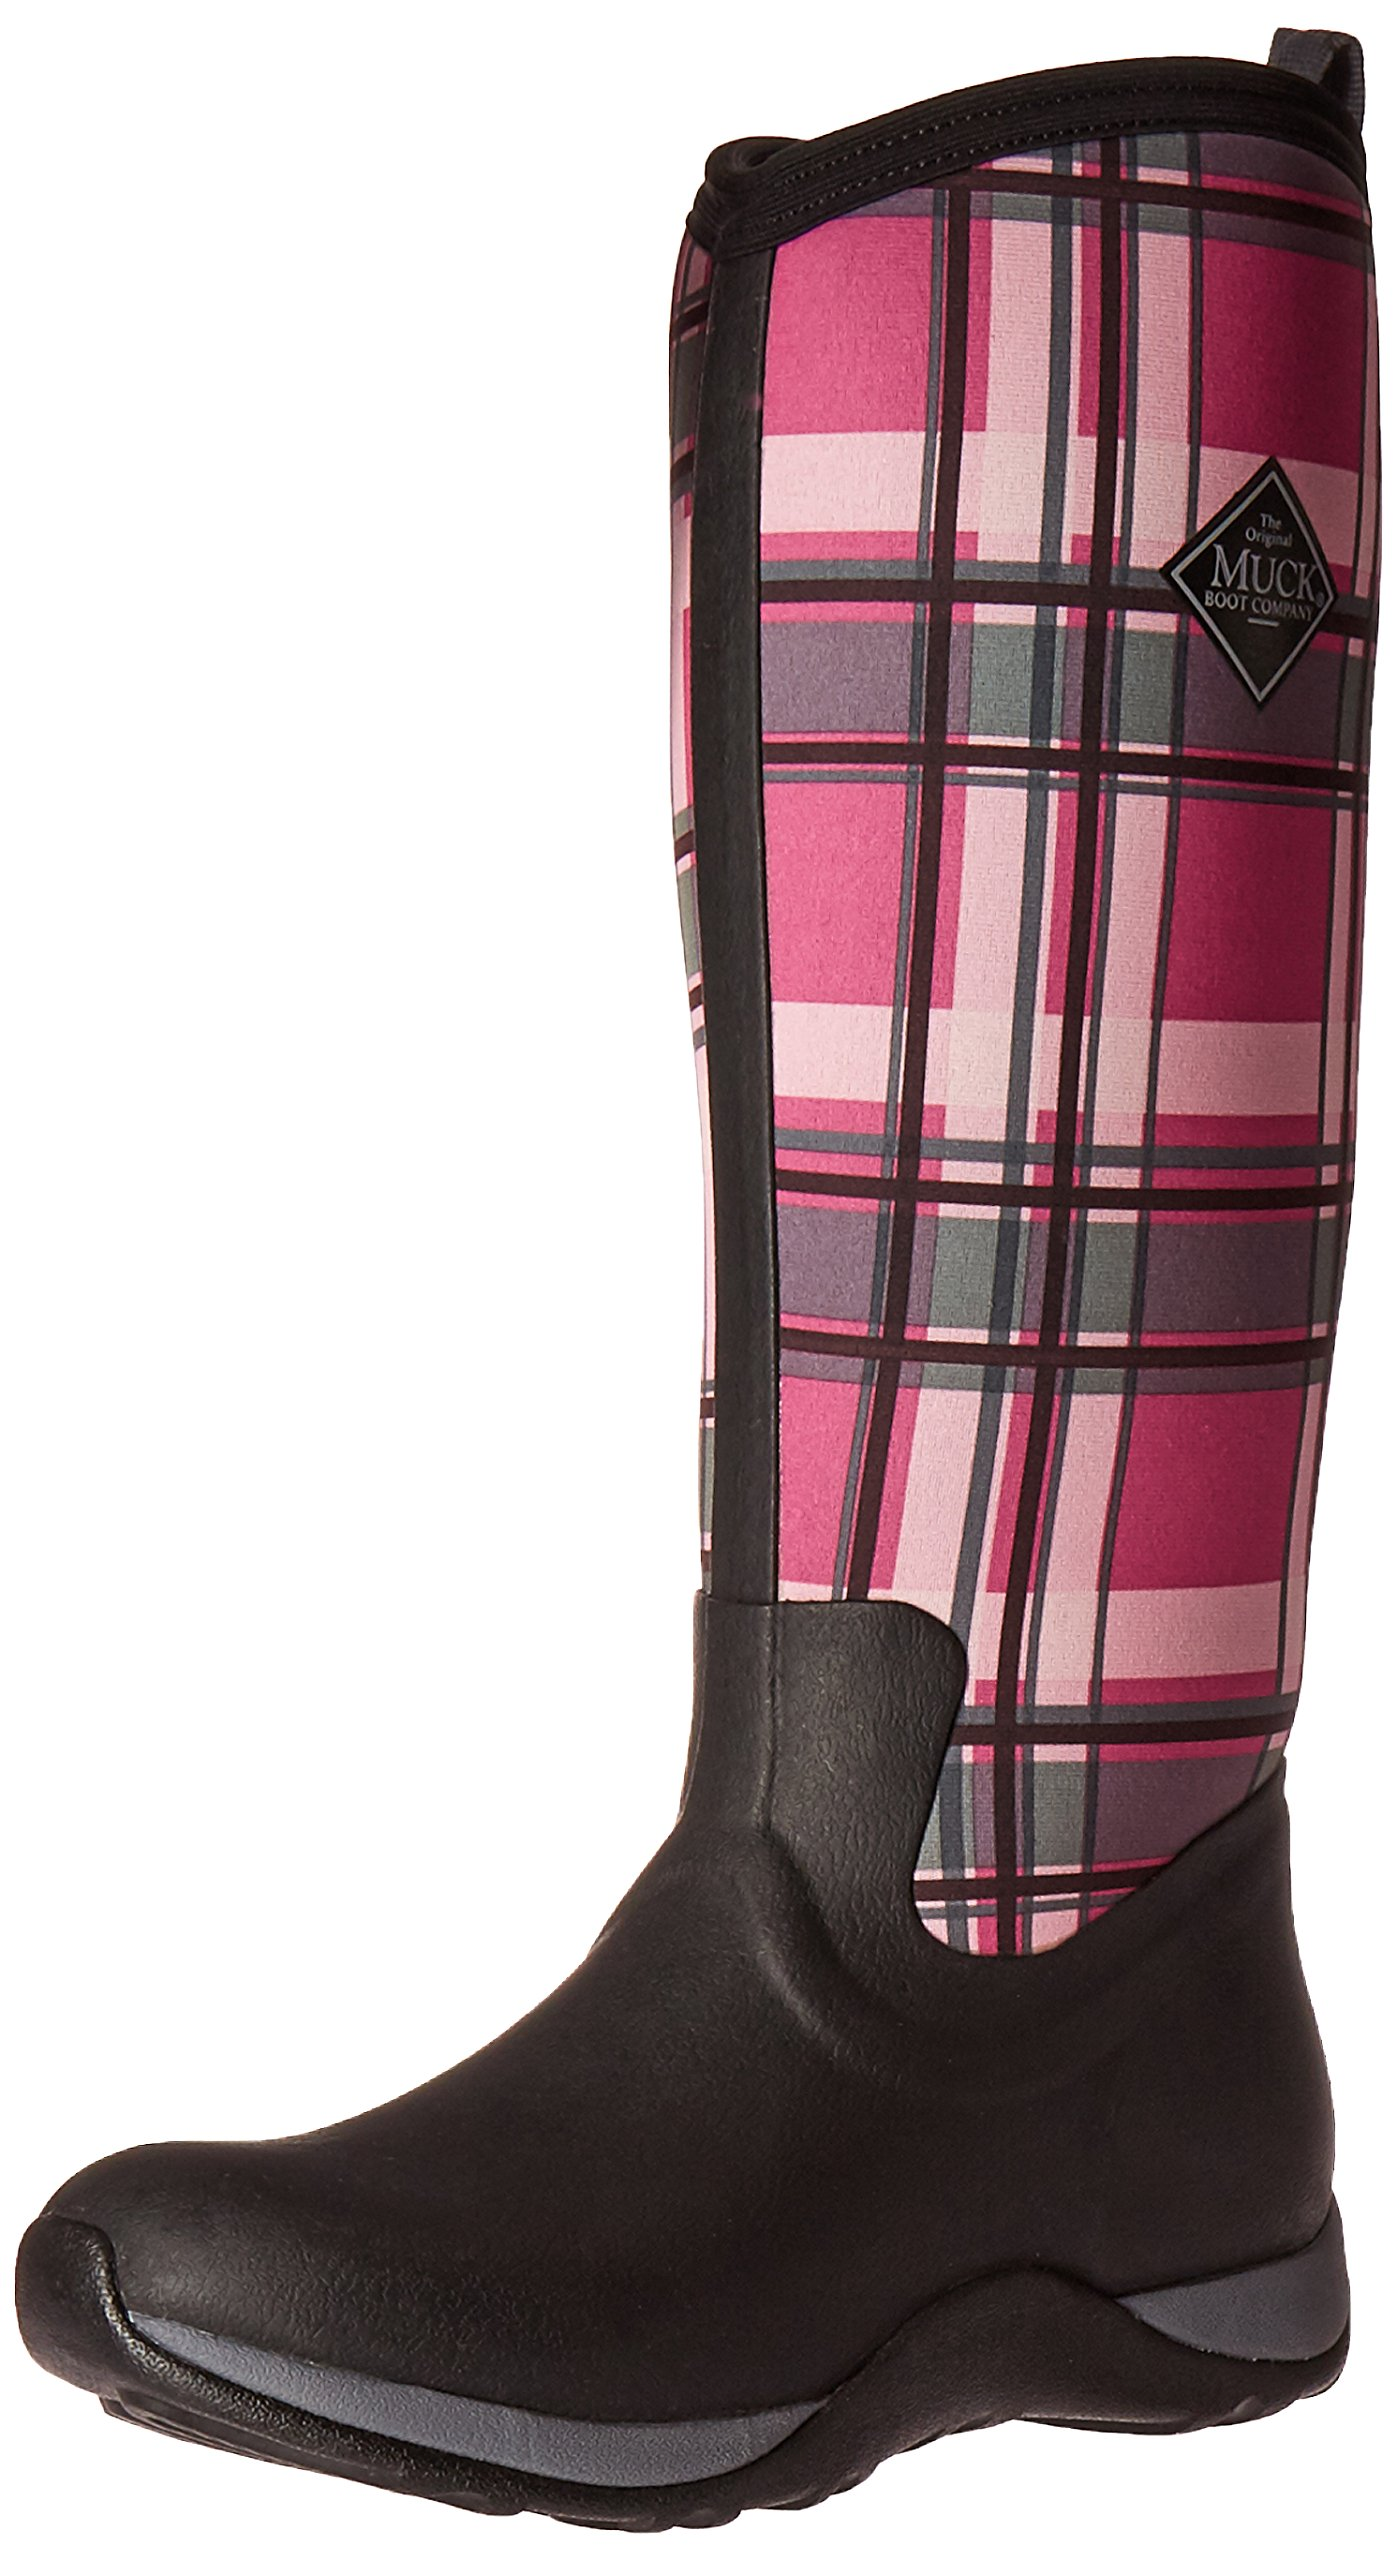 Muck Boot Women's Arctic Adventure Tall Snow Boot, Black/Pink Plaid, 8 M US